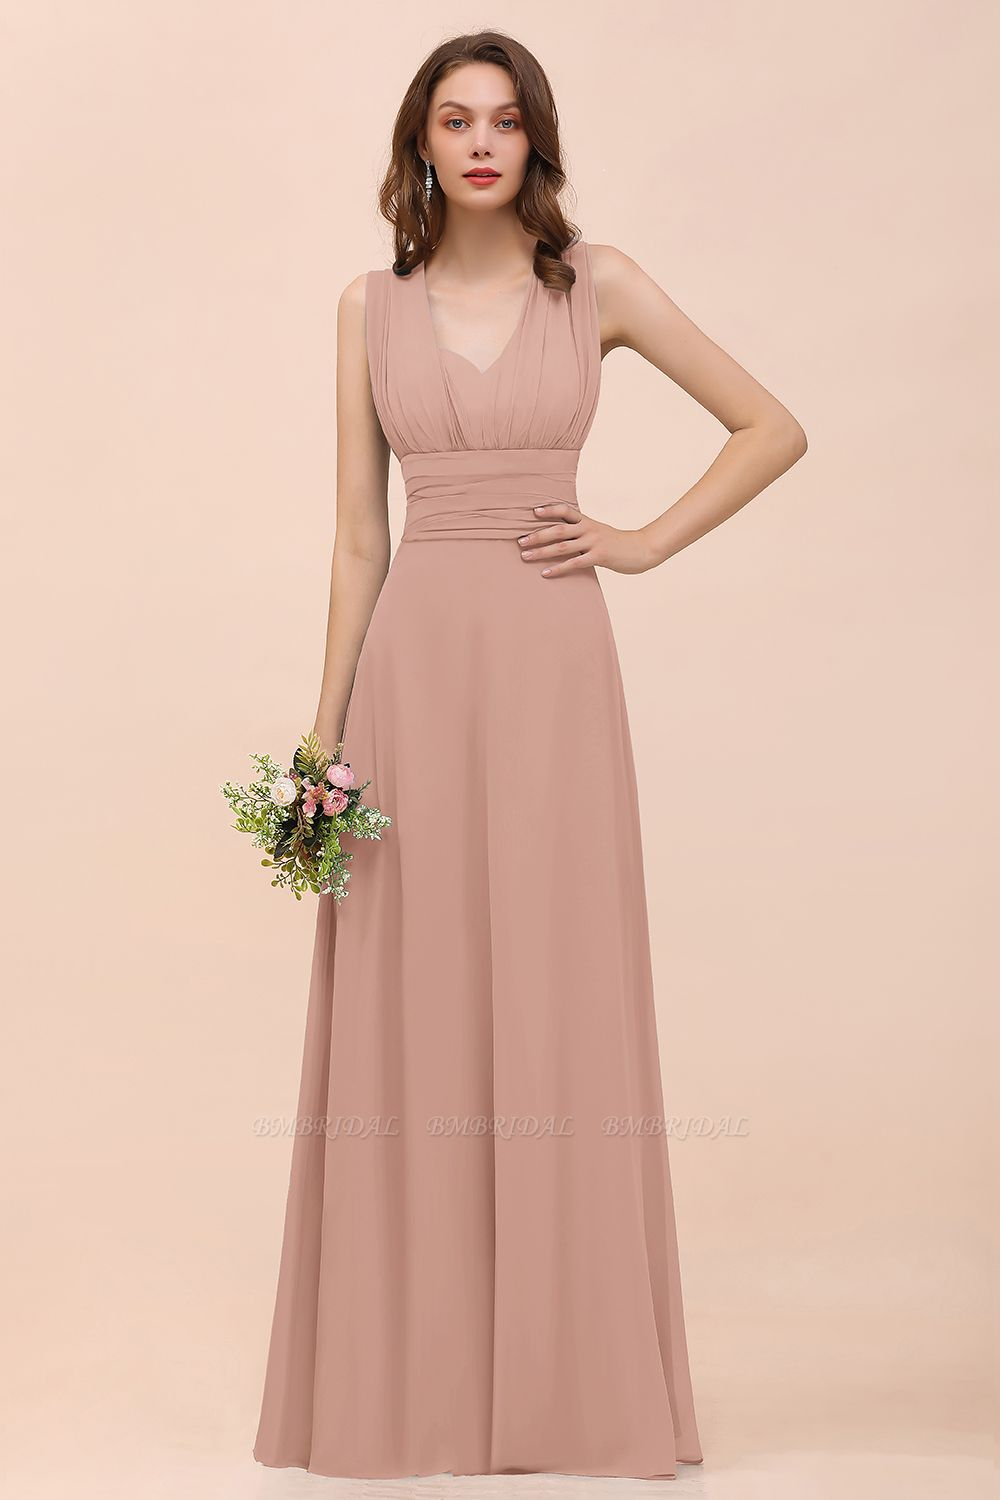 BMbridal New Arrival Dusty Blue Ruched Long Convertible Bridesmaid Dresses